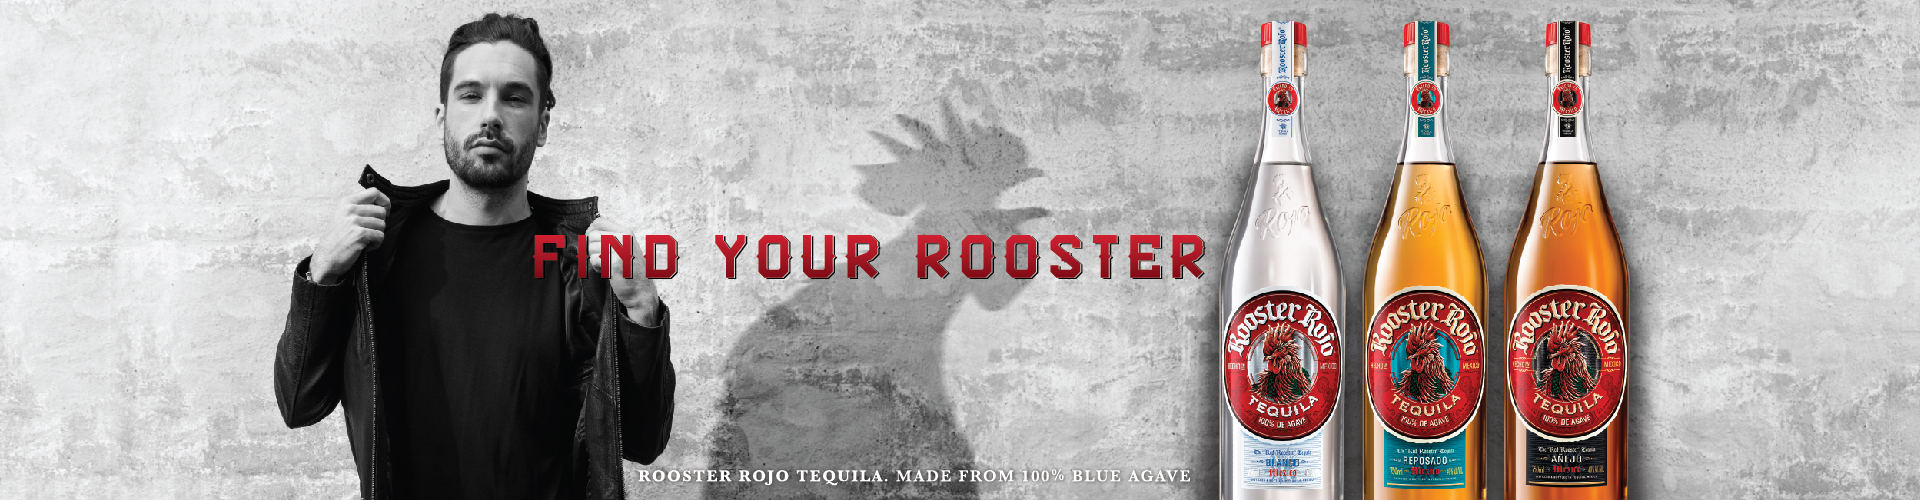 Find Your Rooster